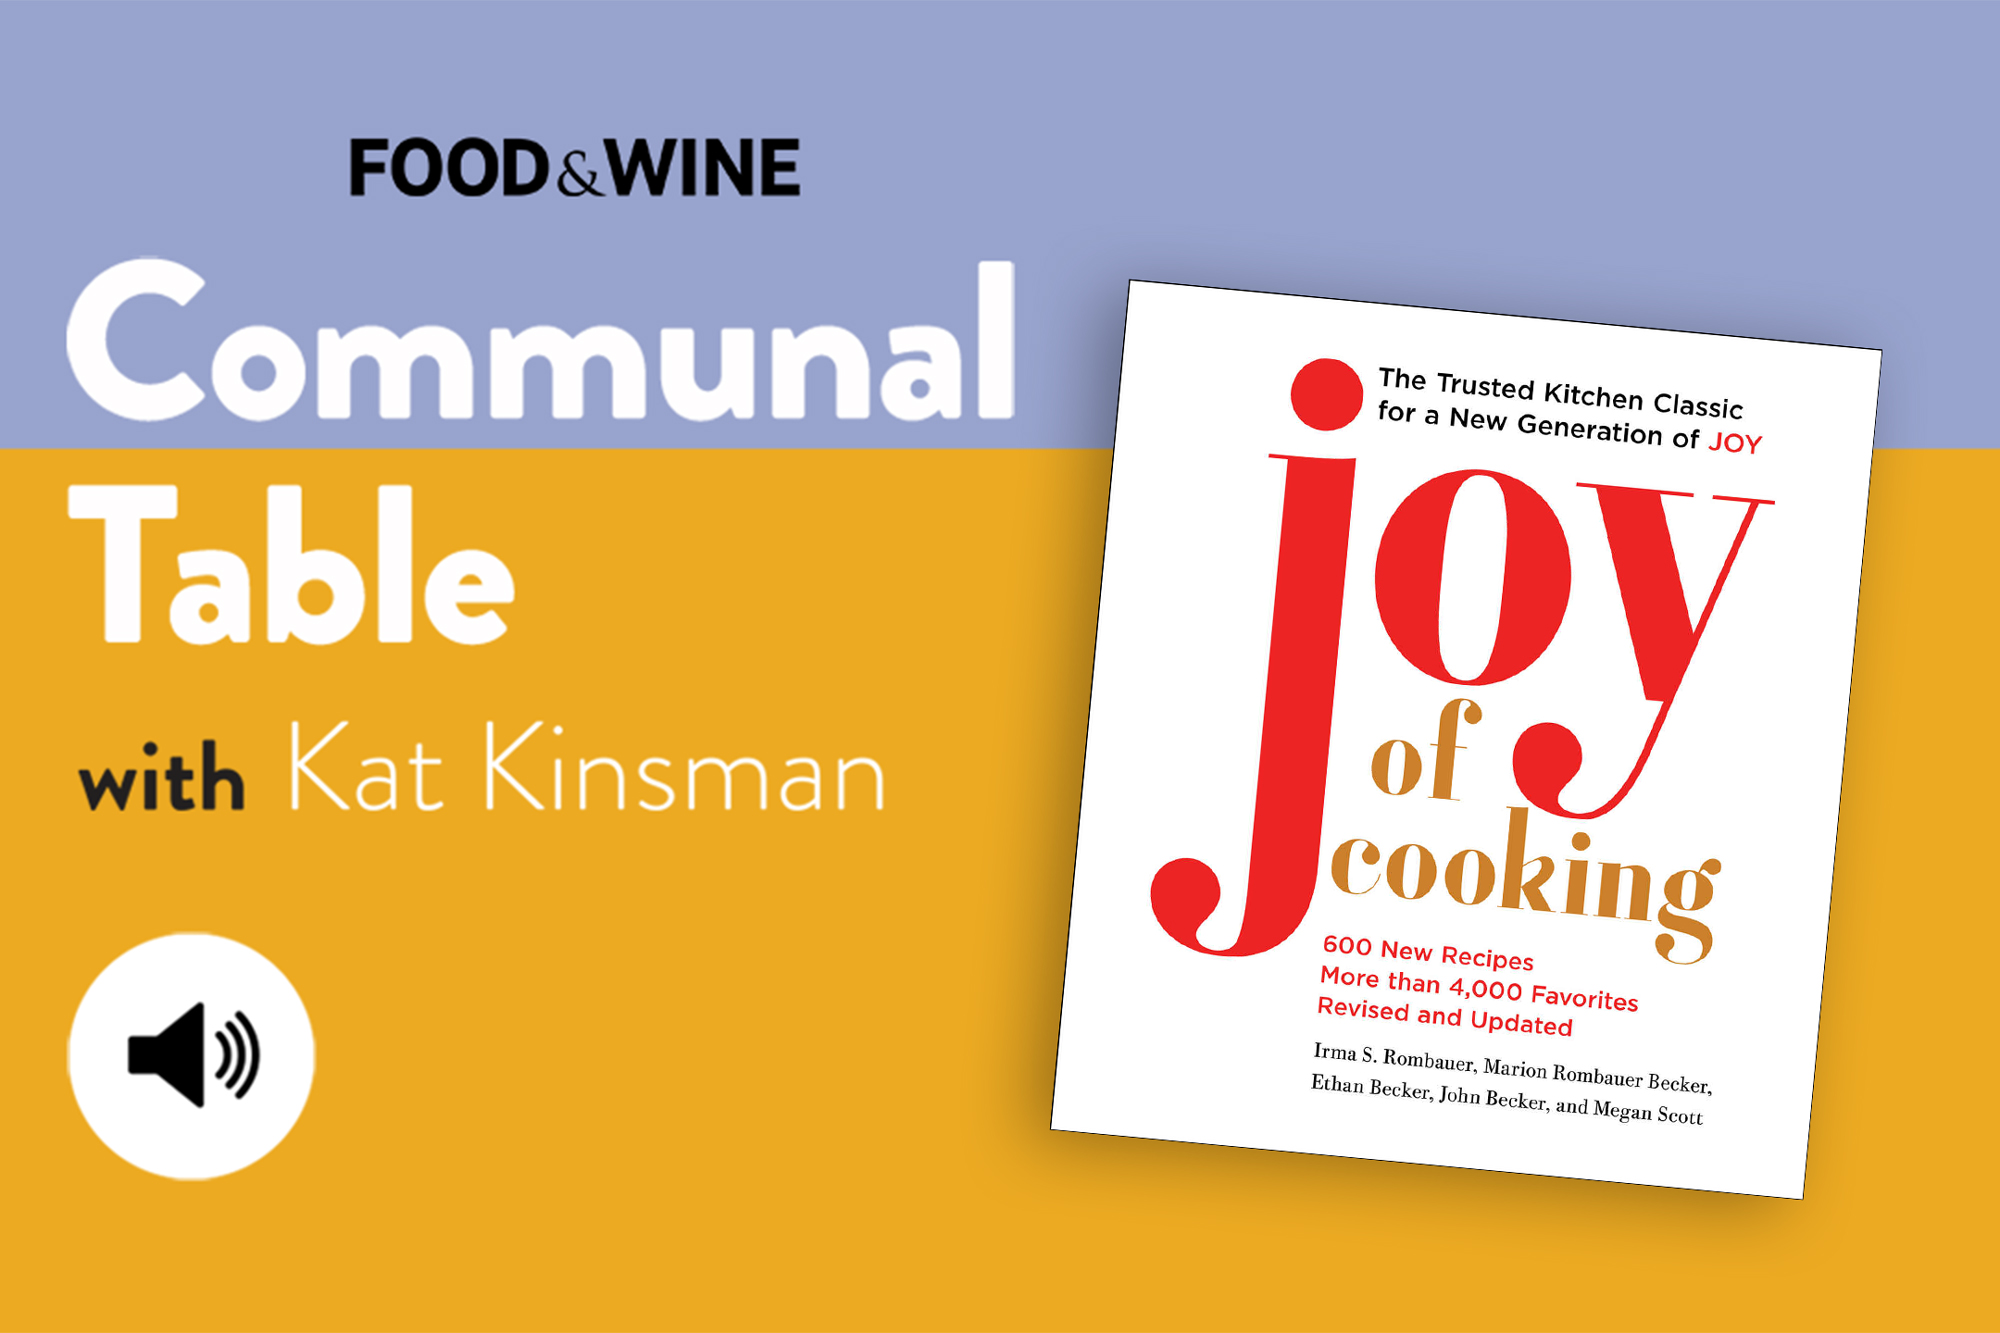 Communal Table with Kat Kinsman featuring The Joy of Cooking